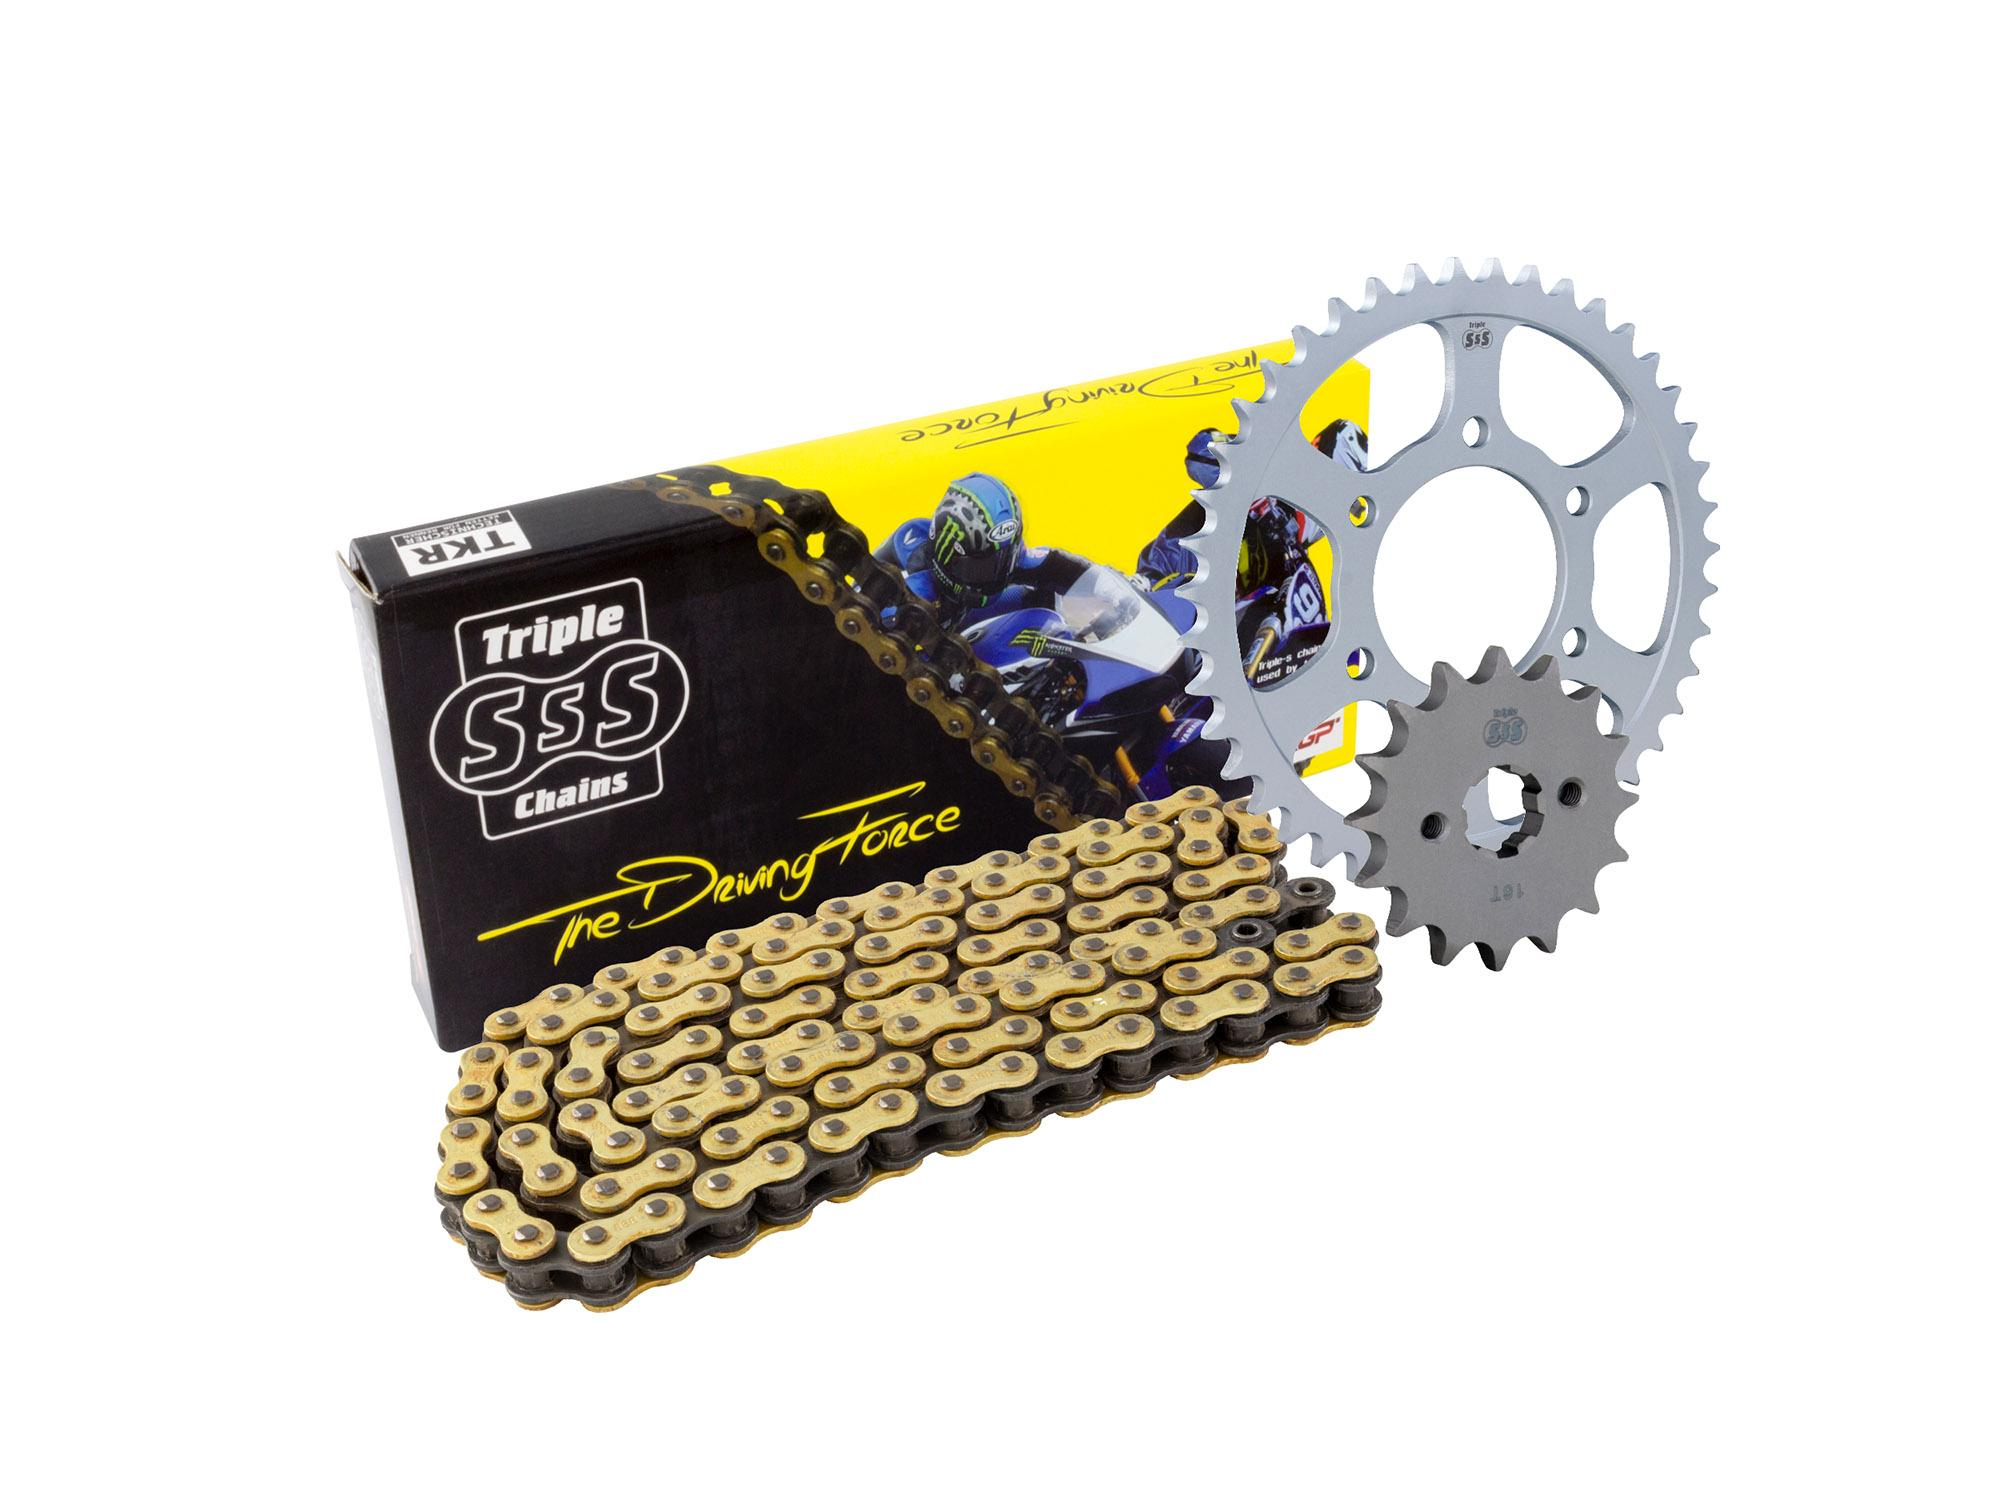 Yamaha FJ1200 / FJ1200A 91-96 Chain & Sprocket Kit: 17T Front, 39T Rear, HD O-Ring Gold Chain 530H 110 Link